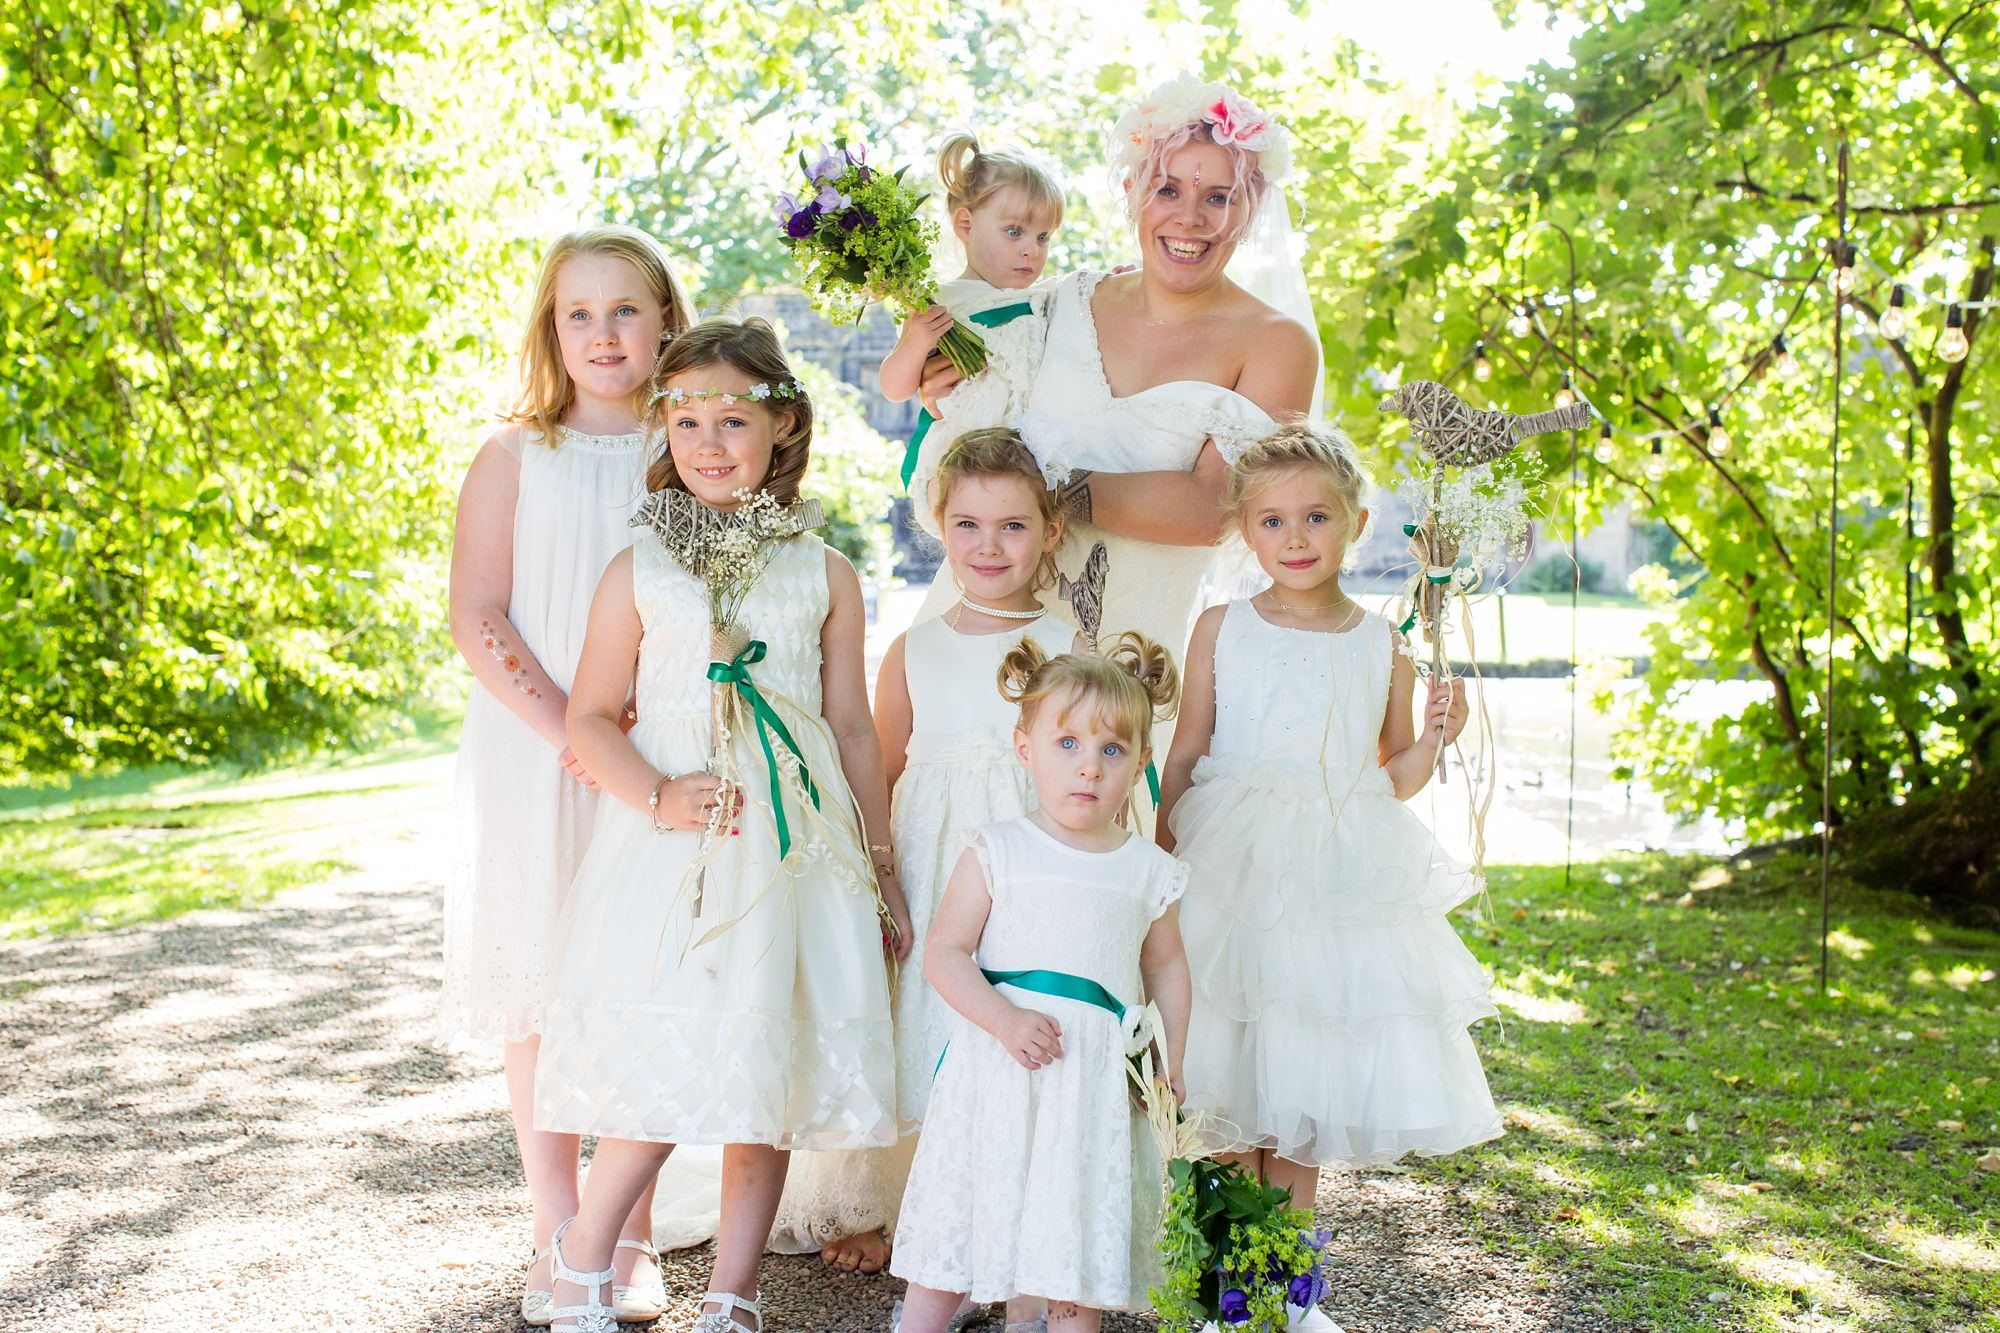 Boho Bohemian Bride and flower girls weating white dresses and flower crowns at East Riddlesden Hall Wedding